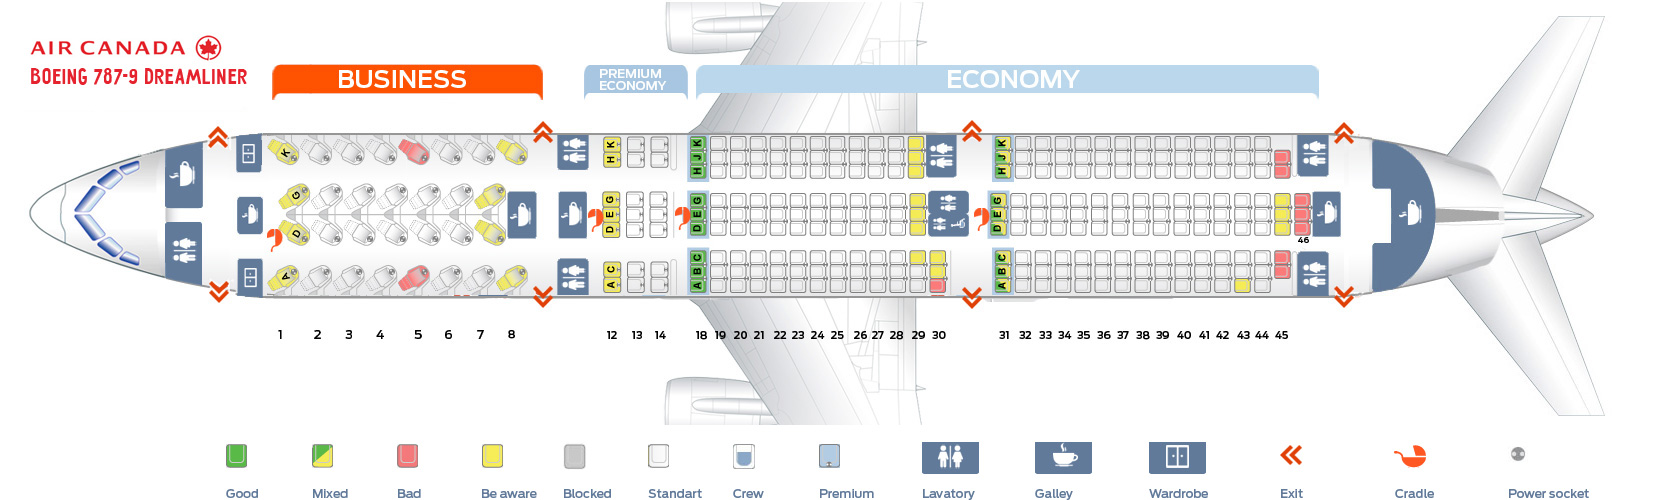 Seat Map Air Canada 787 Seat map Boeing 787 9 Dreamliner Air Canada. Best seats in plane